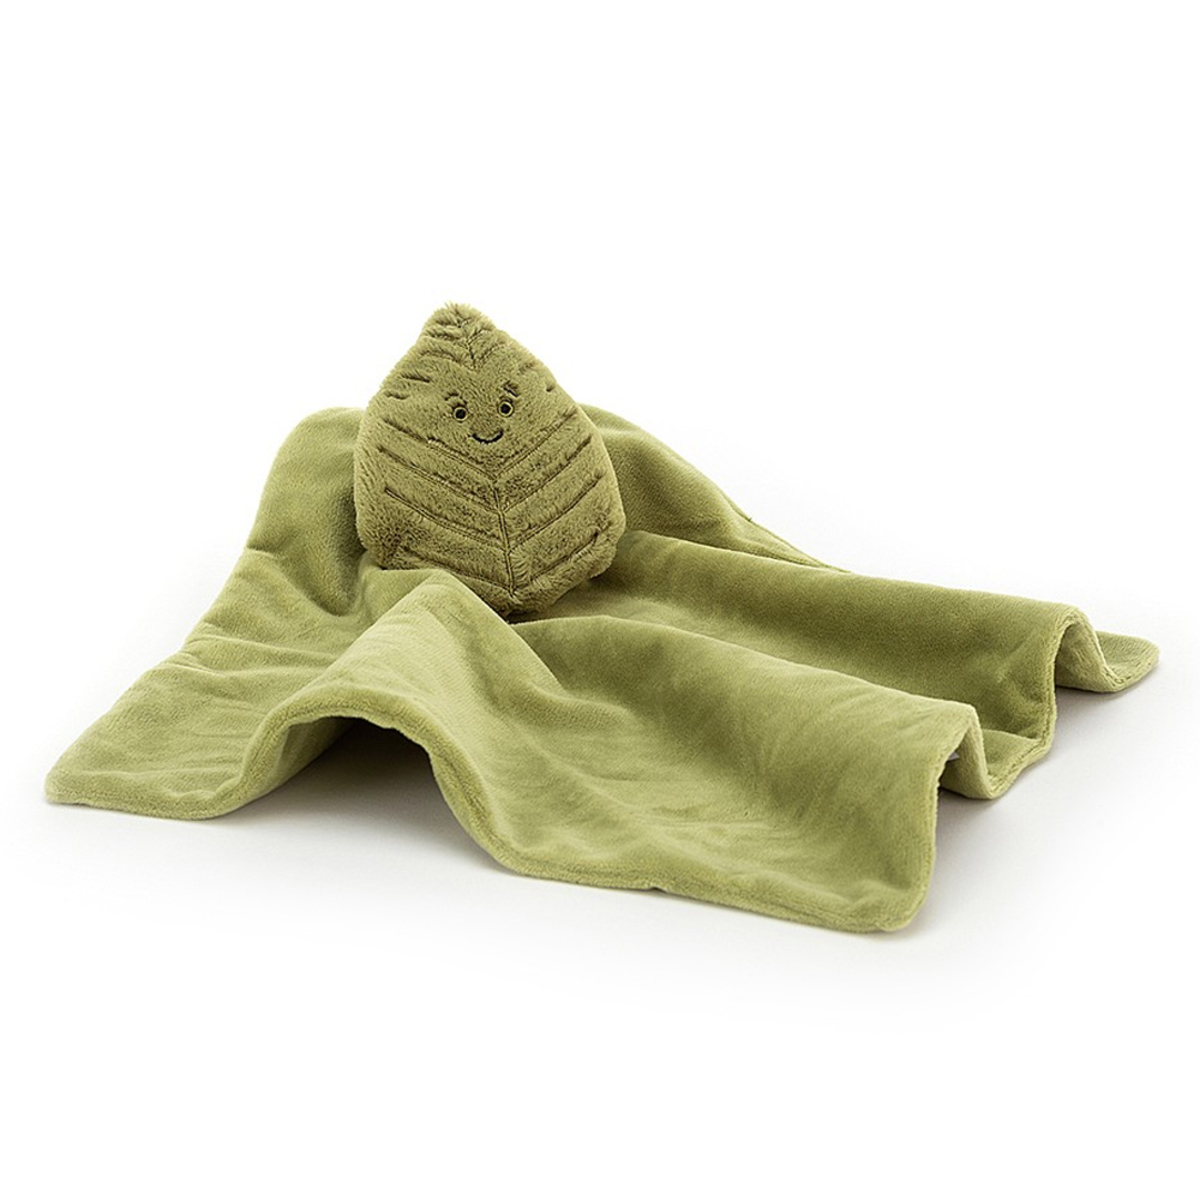 Doudou Woodland Beech Leaf Soother Doudou Feuille